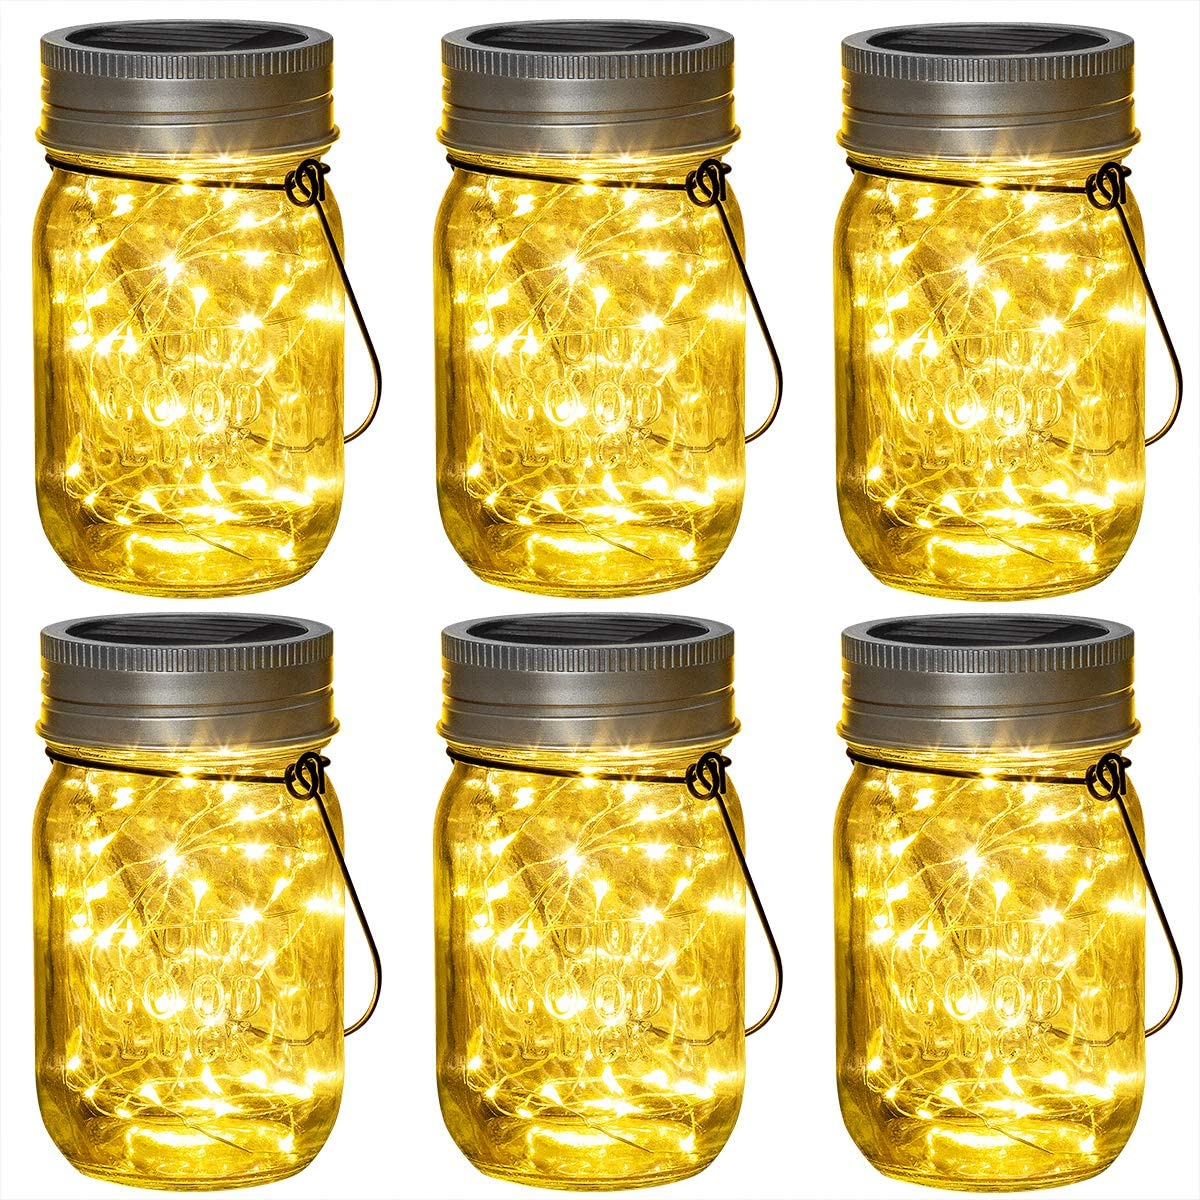 Solpex 30 LEDs Hanging Solar Lights Outdoors, 6 Pack Solar Mason Jar Lid Fairy String Lights for Christmas, Patio, Garden, Yard and Lawn Hangers and Jars Included